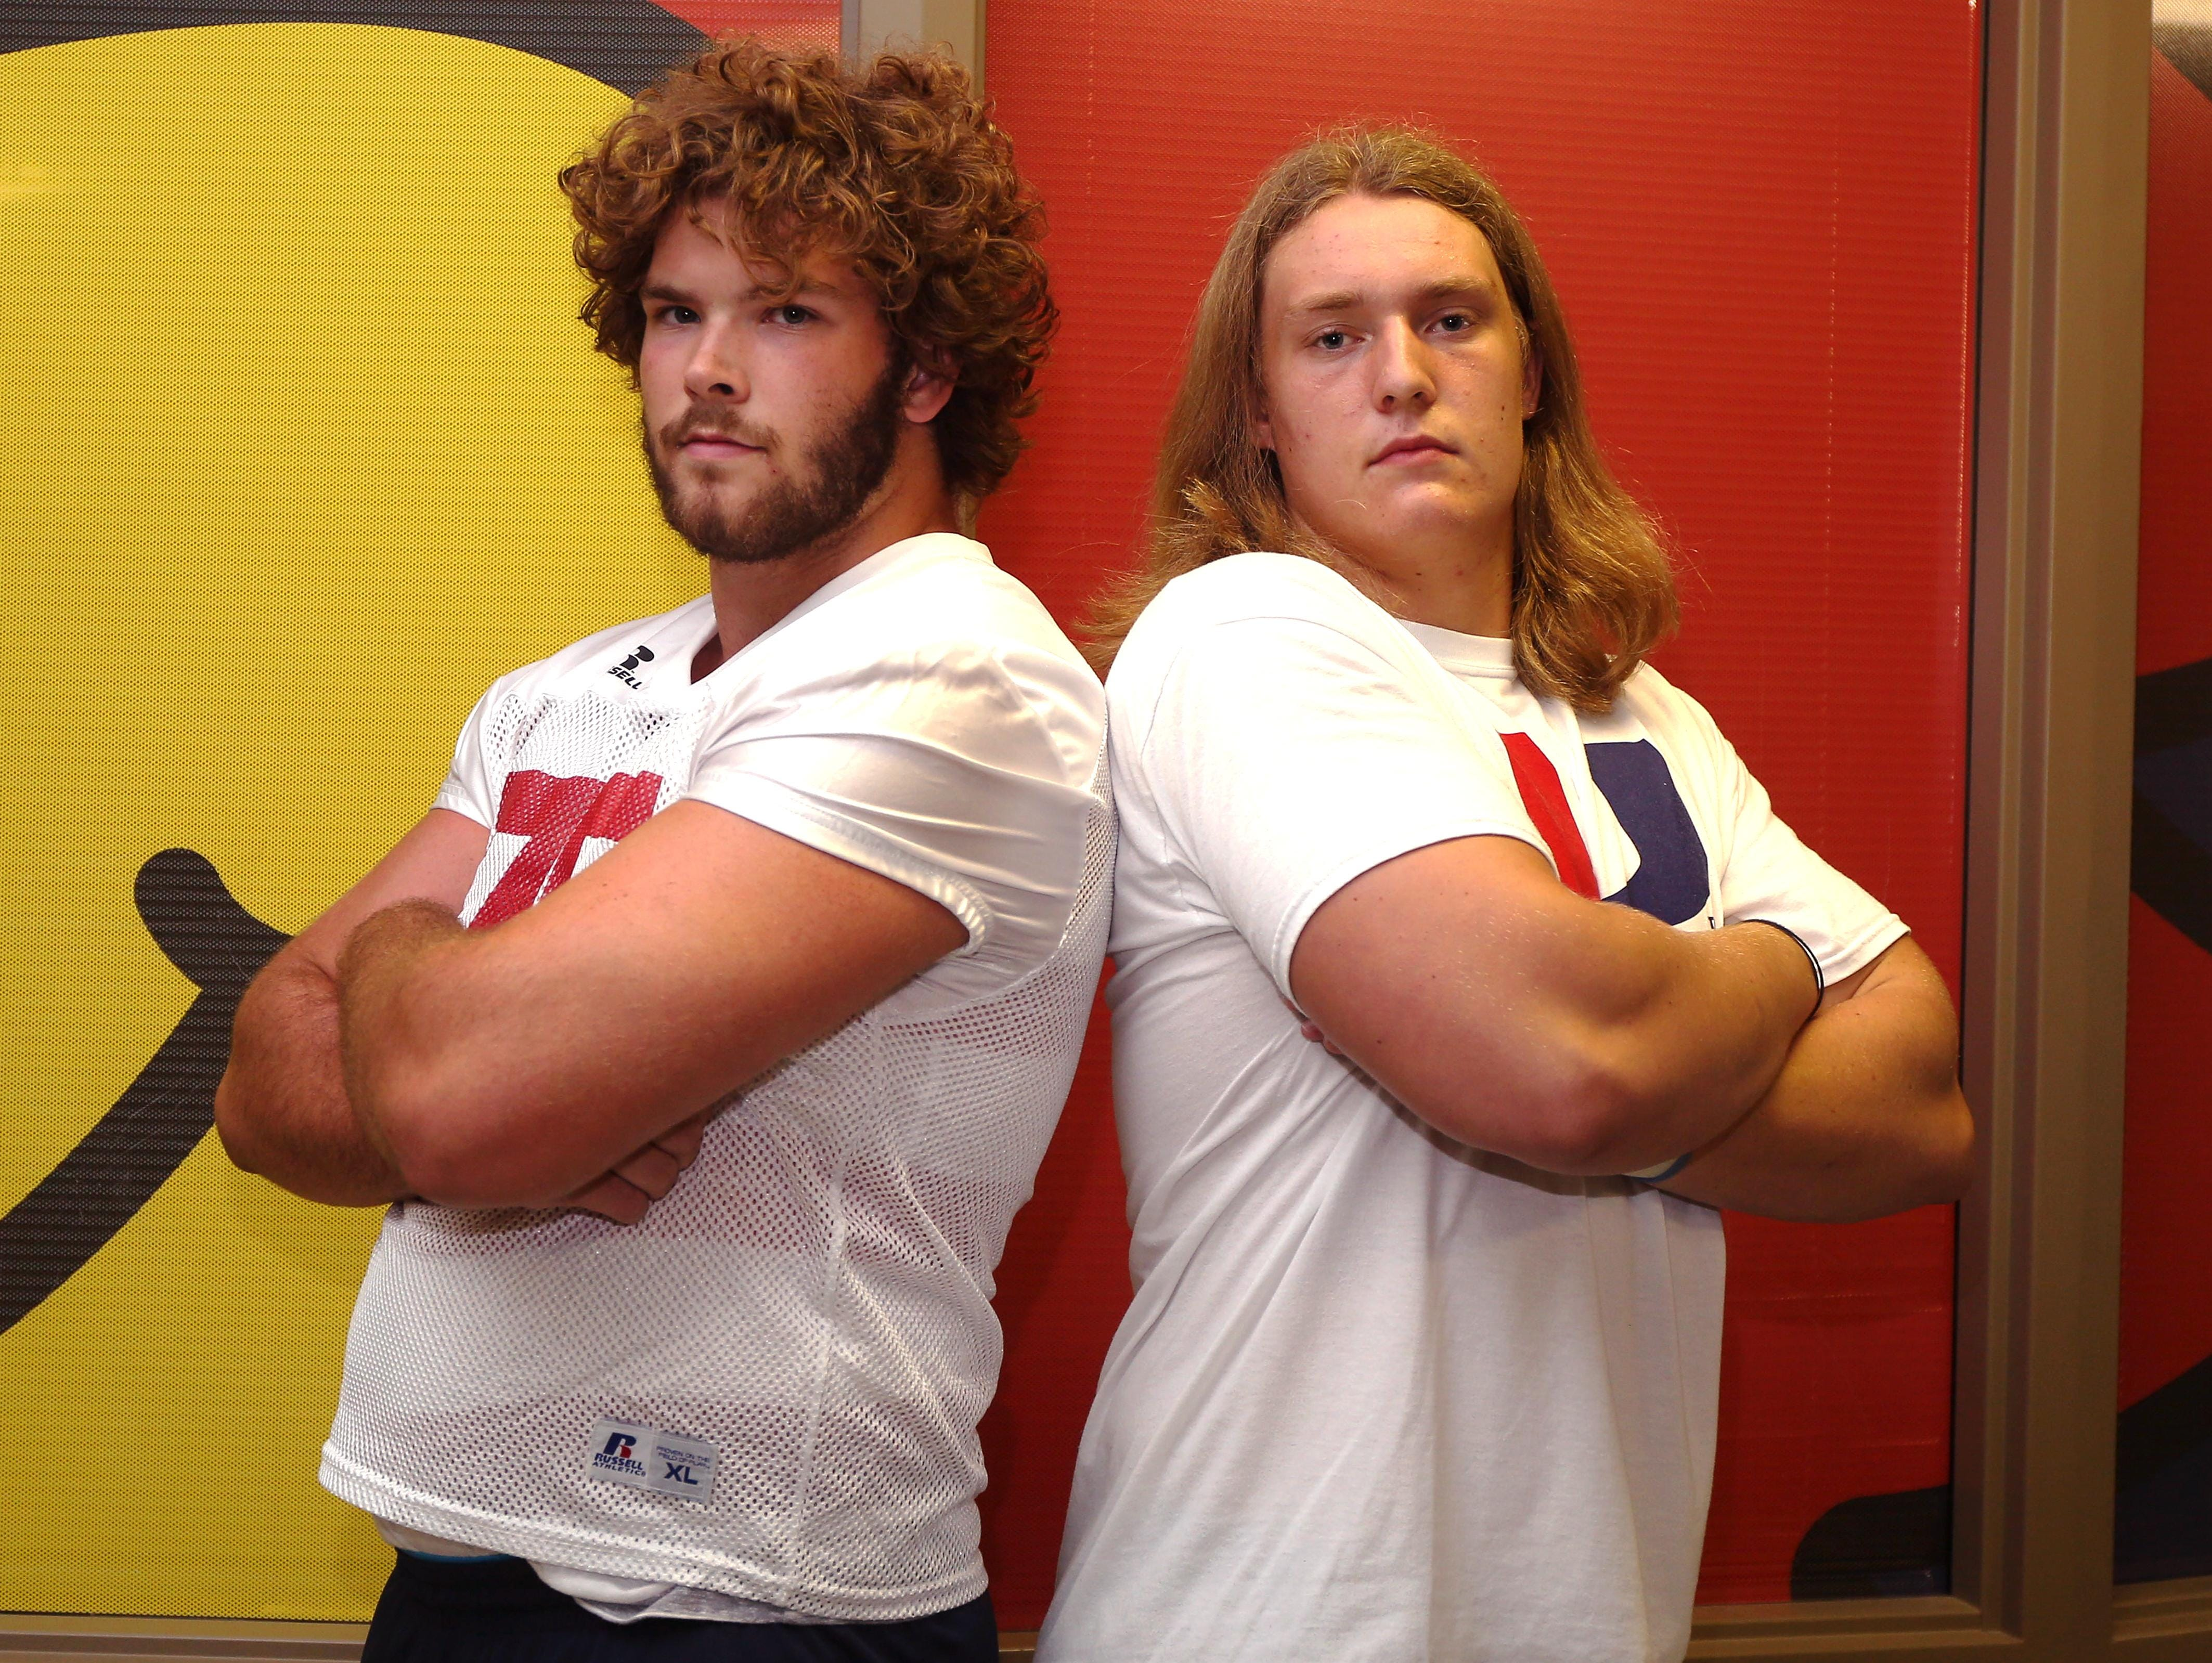 Urbandale offensive linemen Jake Heinrich, left, and Caleb Bright are considered two of the best linemen in the state of Iowa. Both of the seniors have already committed to Division I colleges.